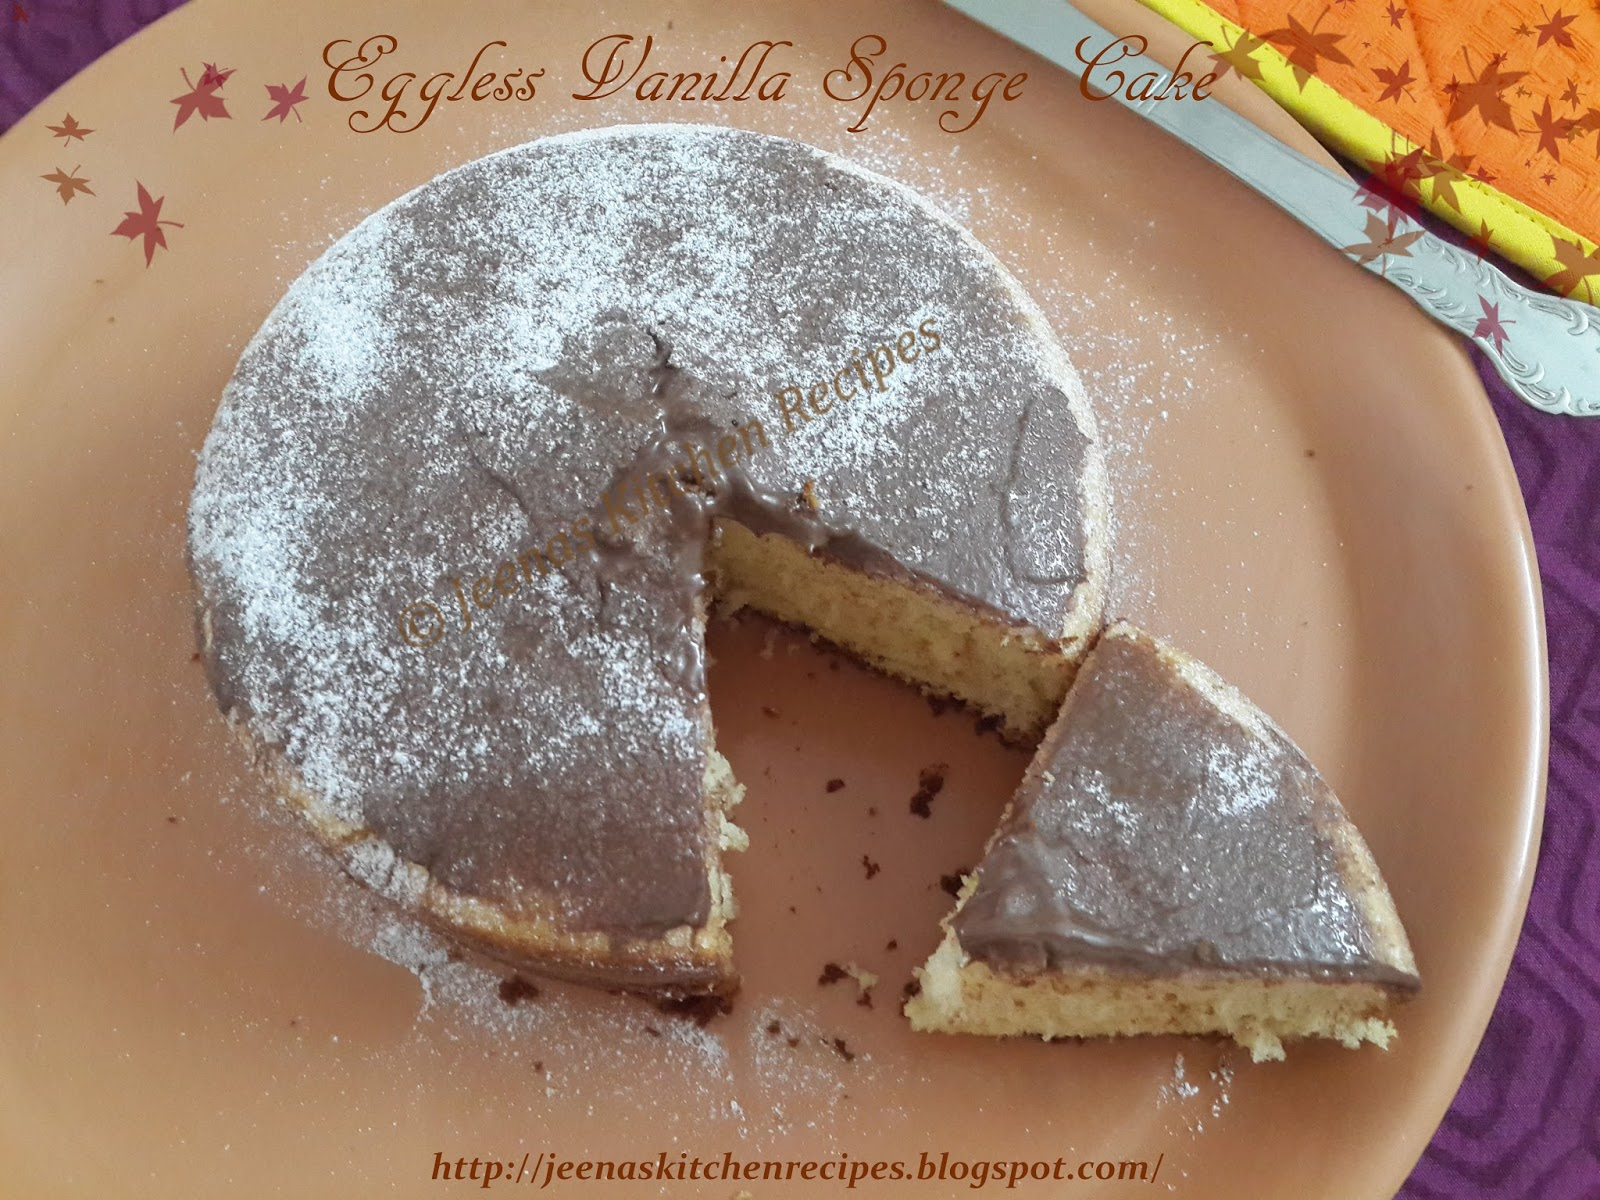 Basic Cake Recipe In Pressure Cooker: Jeenas Kitchen Recipes: Eggless Vanilla Sponge Cake In